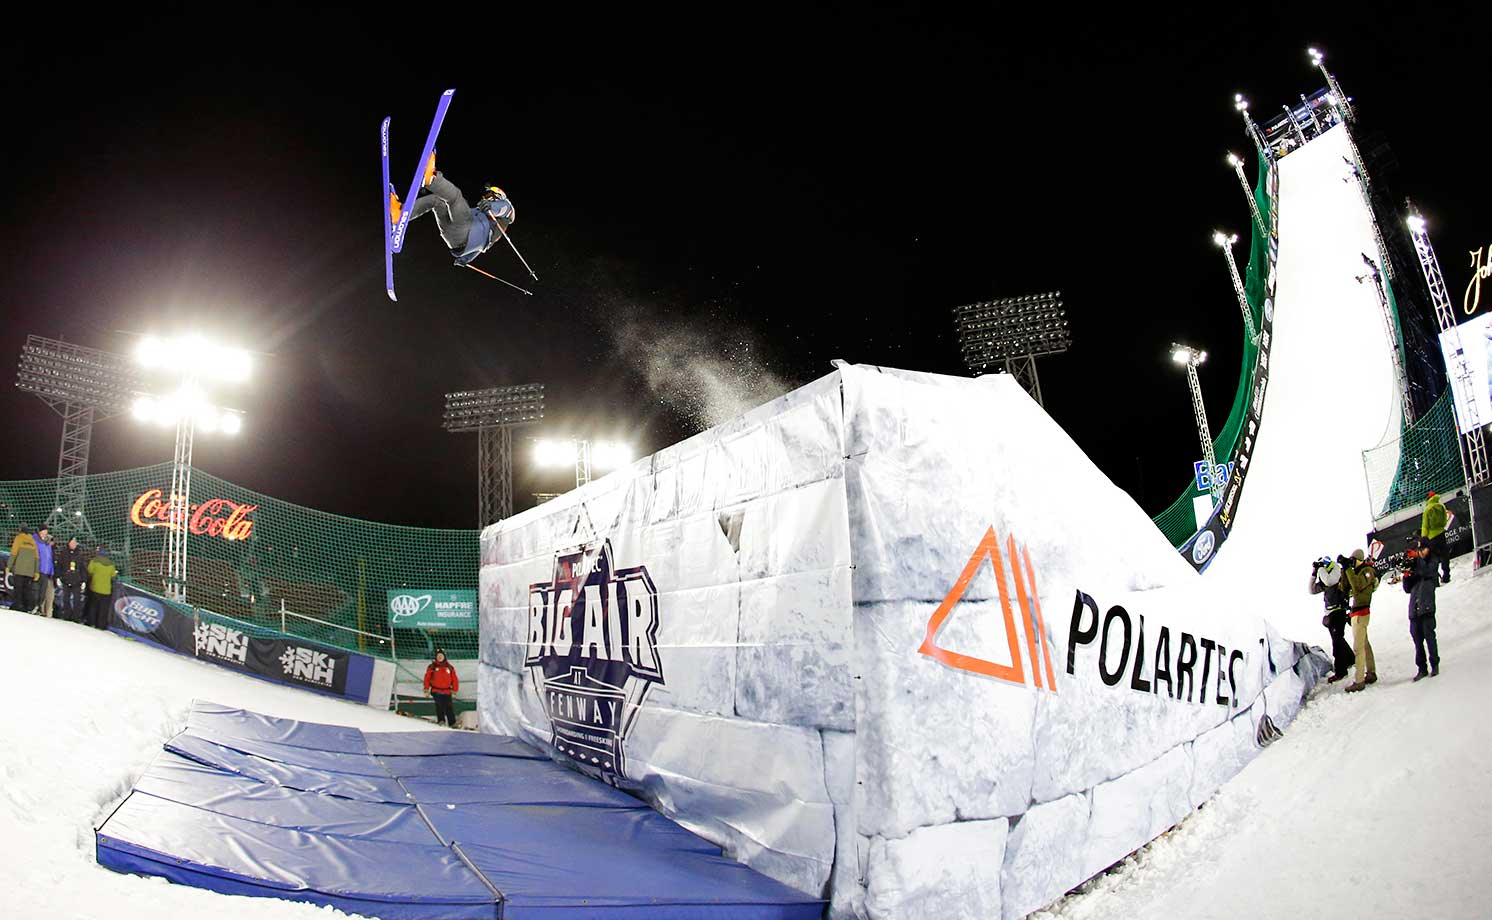 Oscar Westor of Swede, jumps during the Big Air at Fenway Park skiing and snowboarding event in Boston.